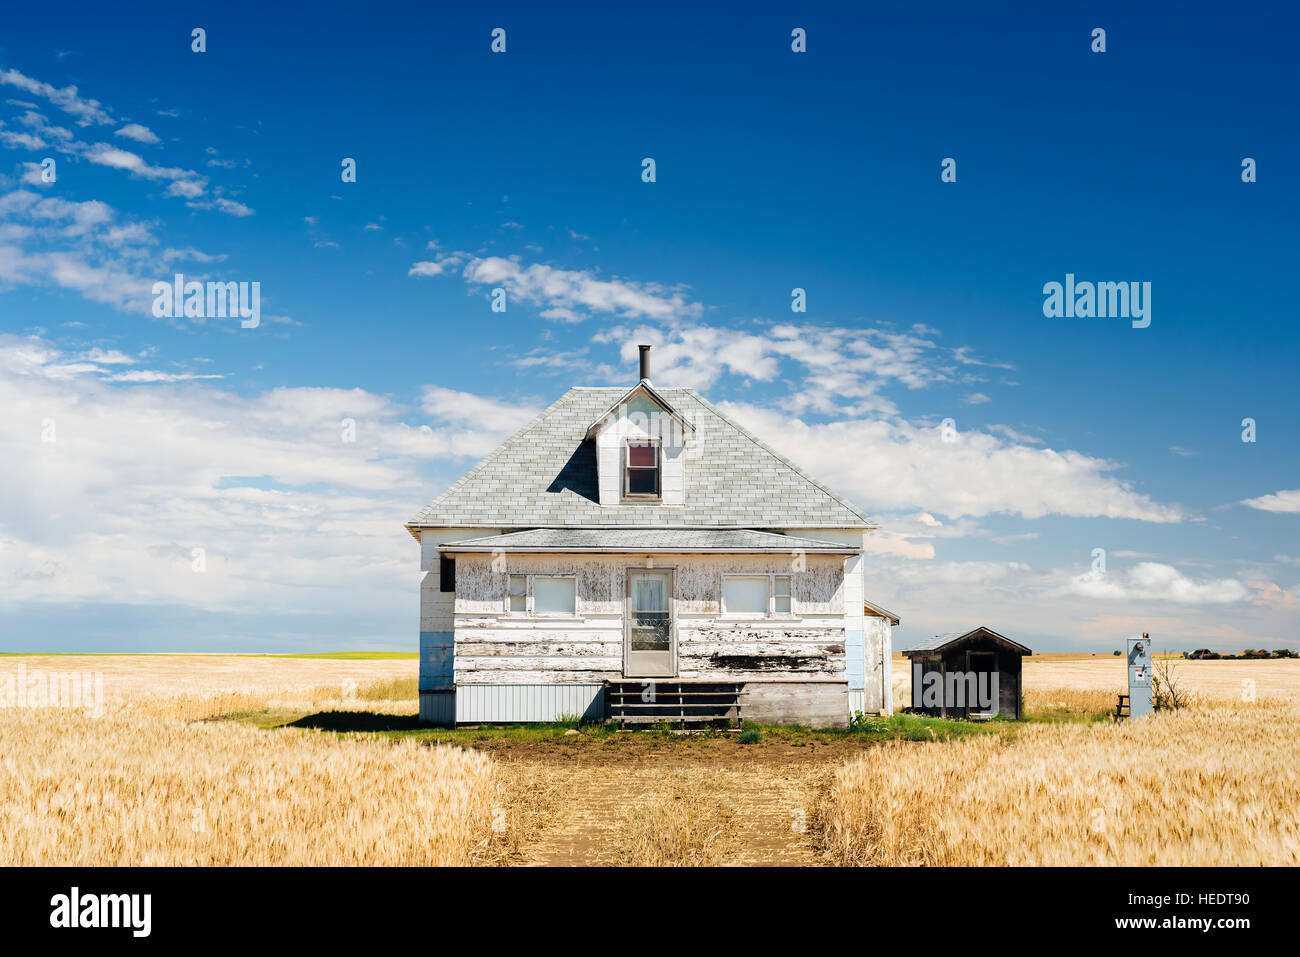 A farm house sits abandoned, surrounded by fields of wheat in rural Saskatchewan - Stock Image